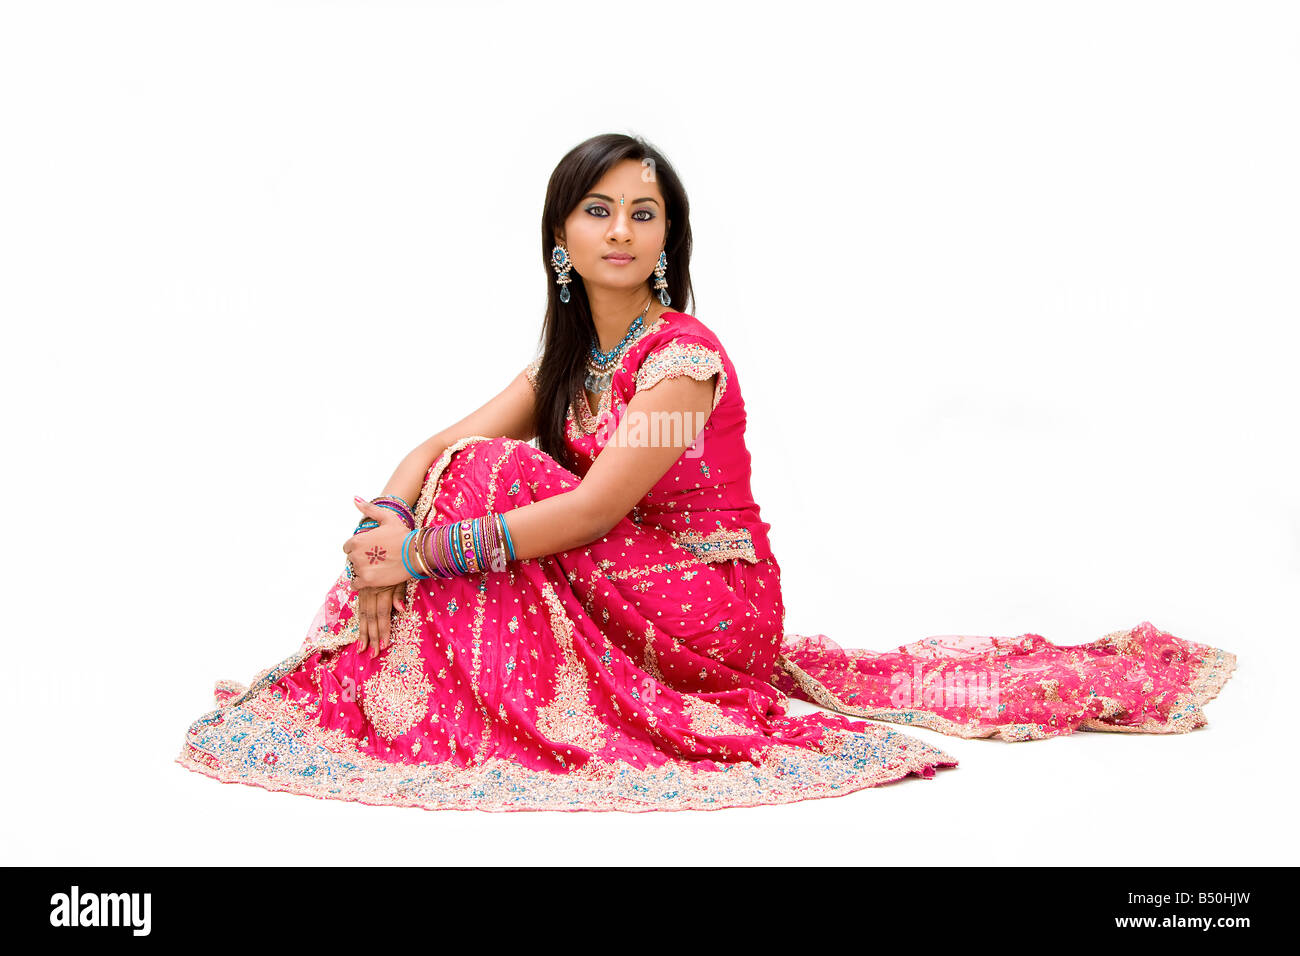 Beautiful Bangali bride in colorful dress sitting isolated - Stock Image